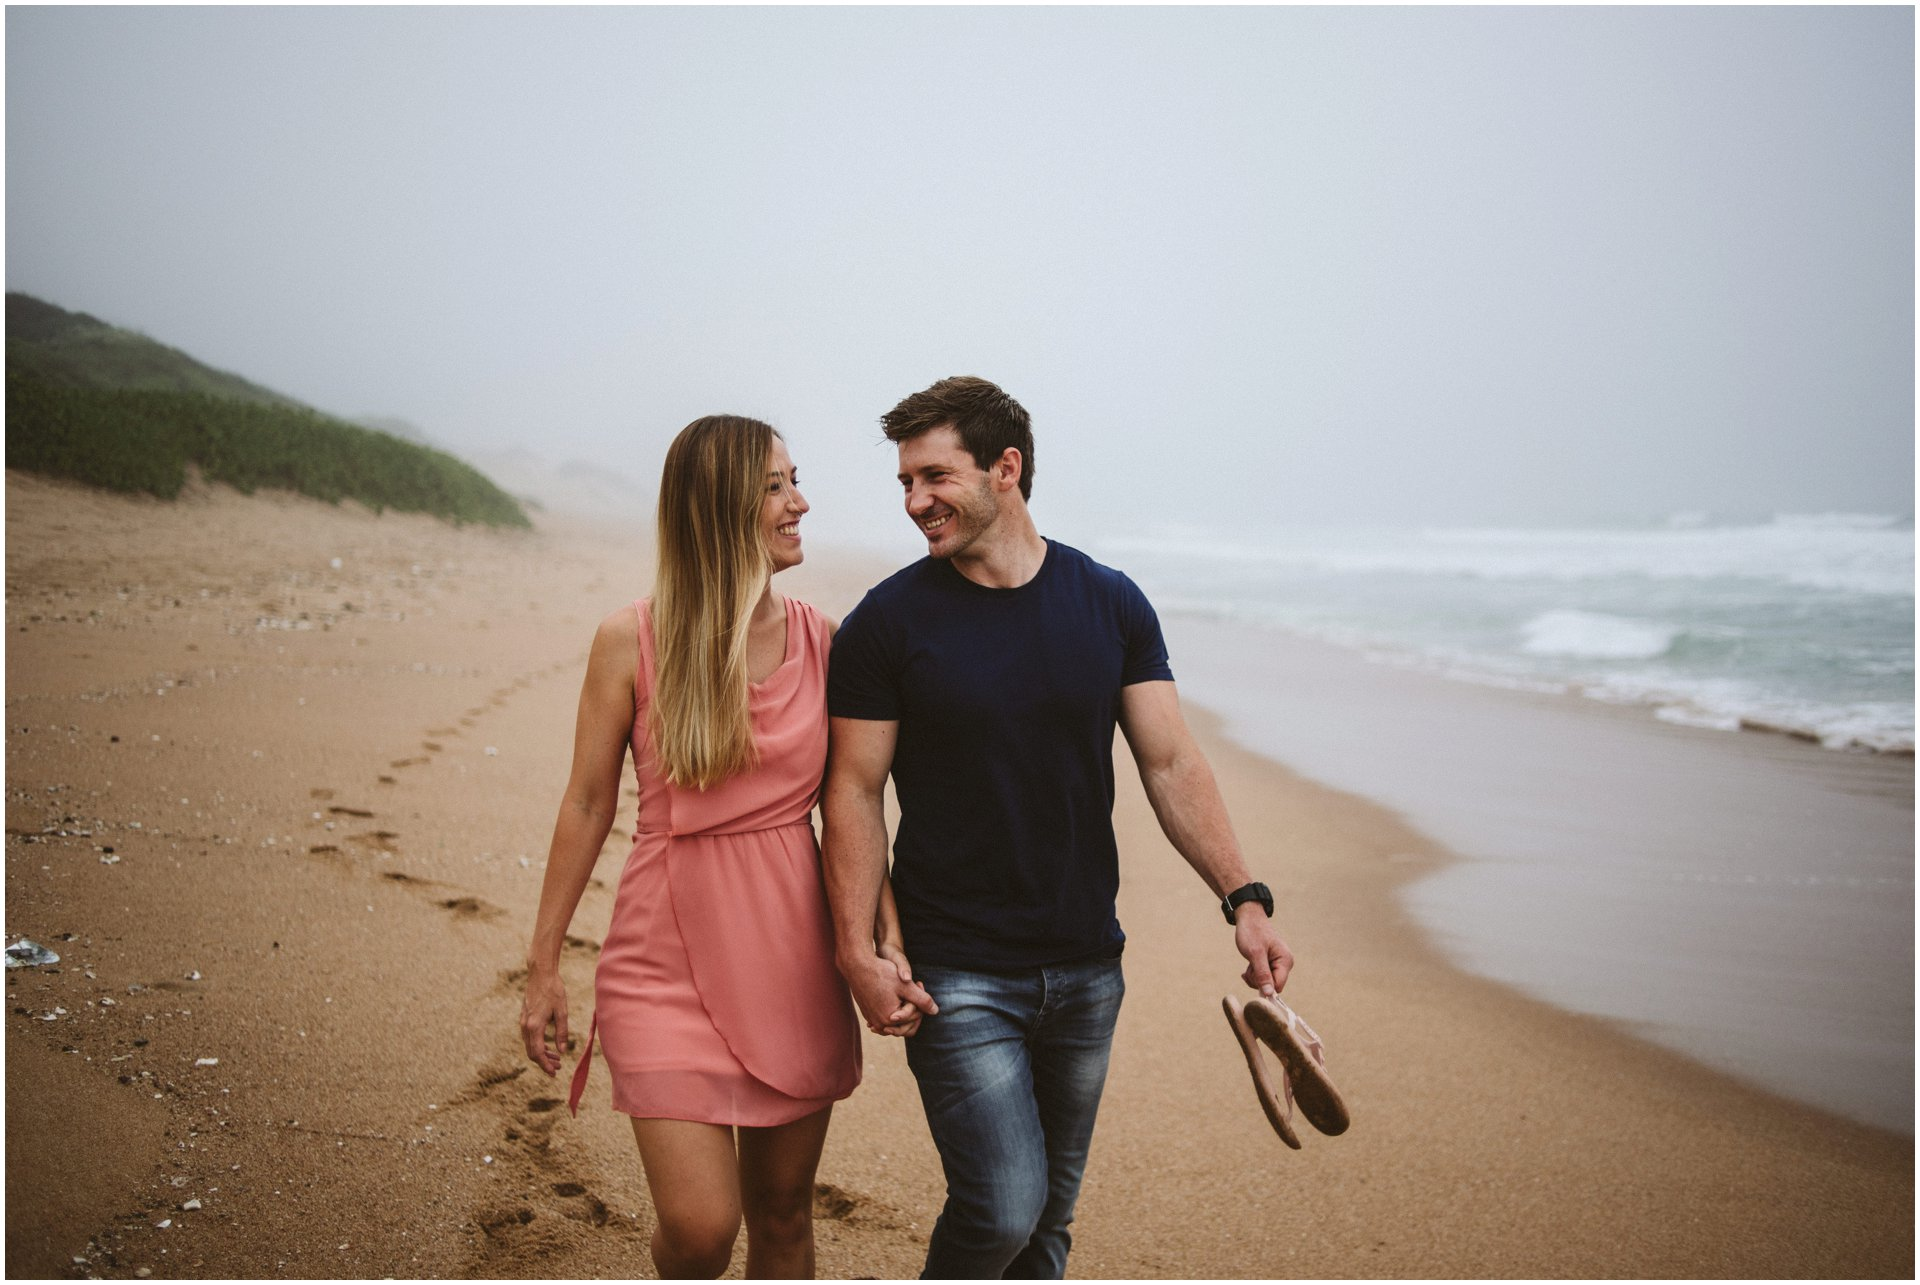 Durban photographer, beach engagement shoot, durban wedding photographer, underwater durban photos, South African Wedding Photographer, South African Elopement, Misty beach walk